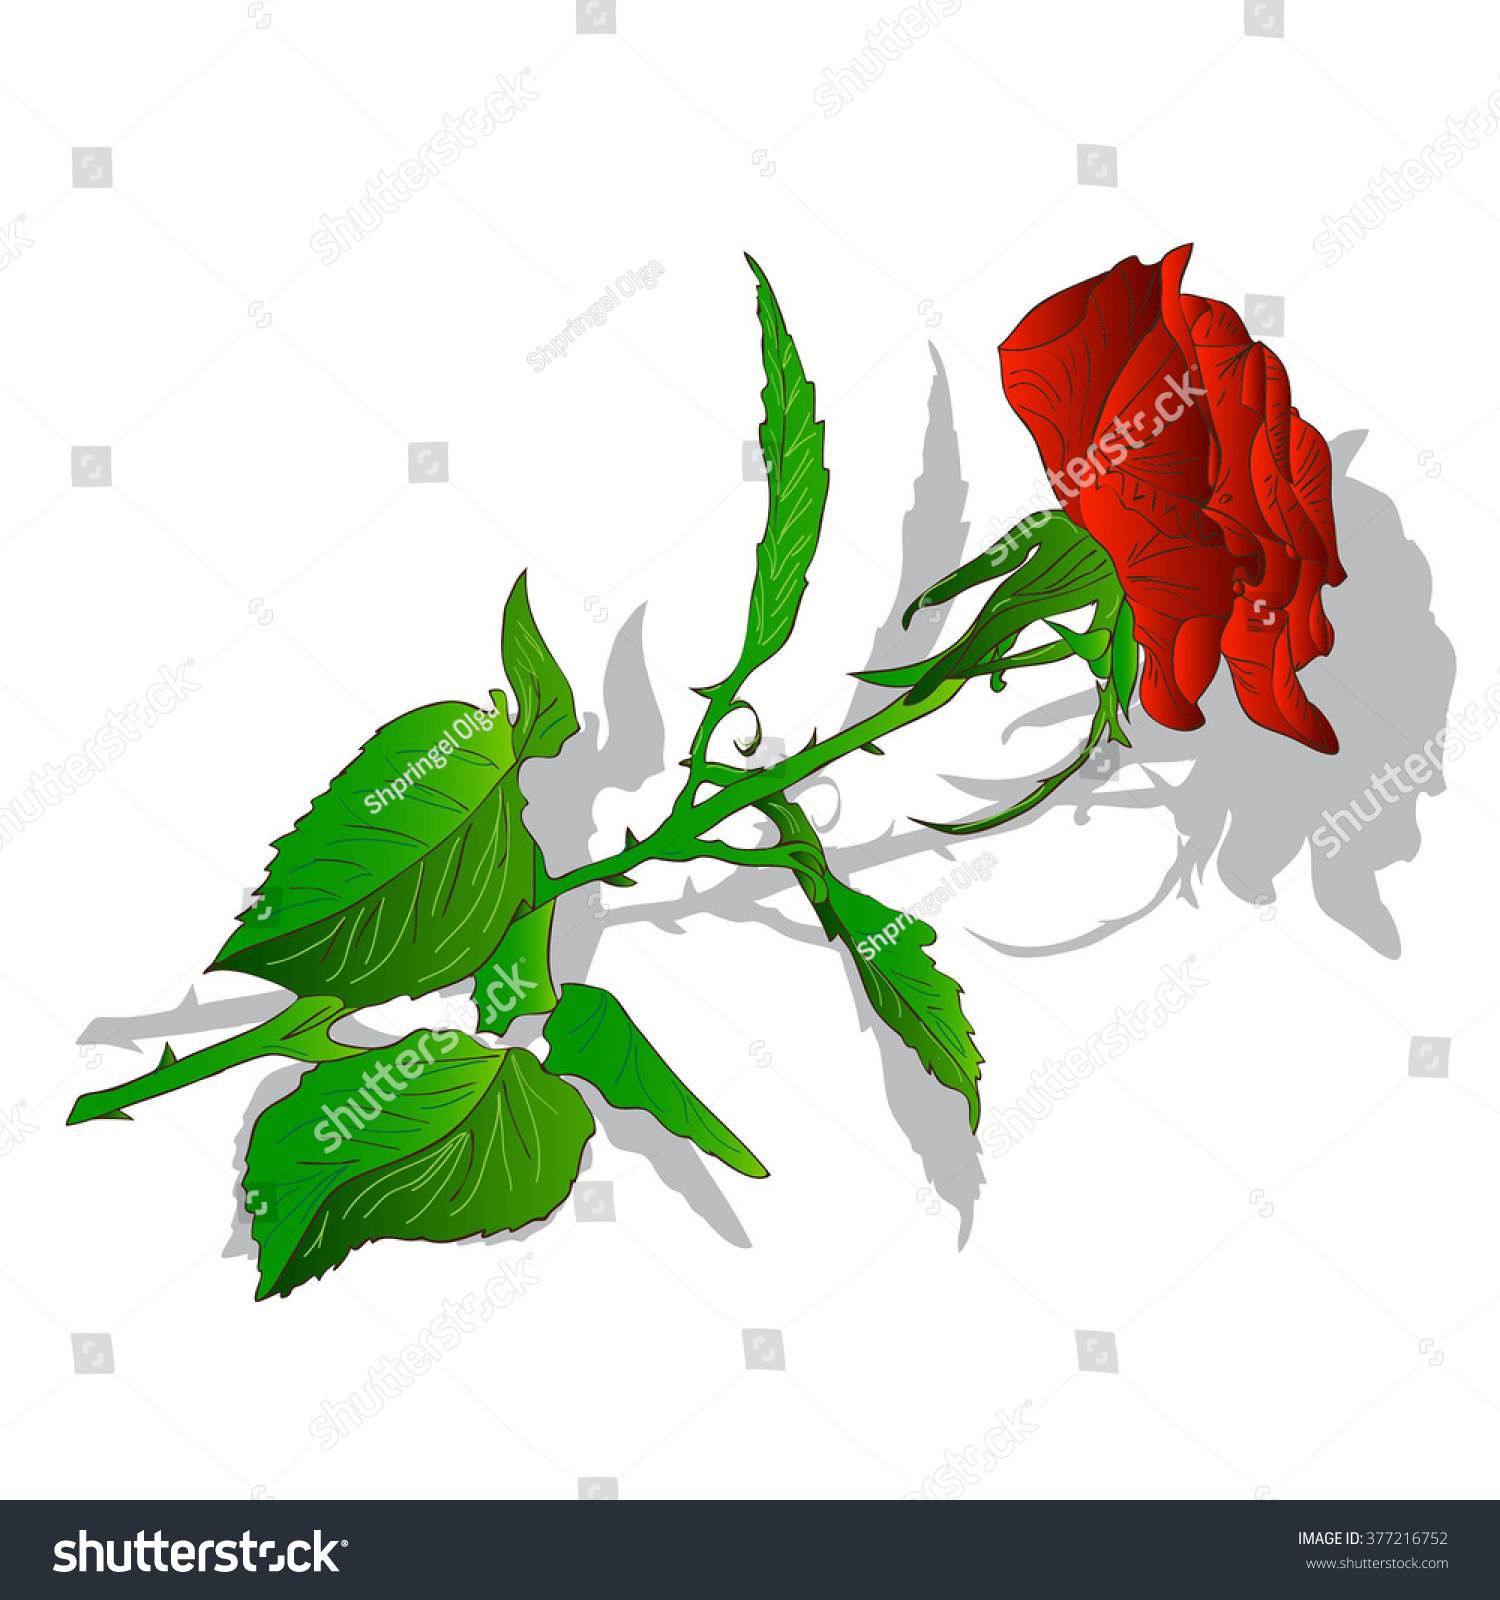 Beautiful flower red rose isolated on stock illustration 377216752 beautiful flower red rose isolated on stock illustration 377216752 shutterstock izmirmasajfo